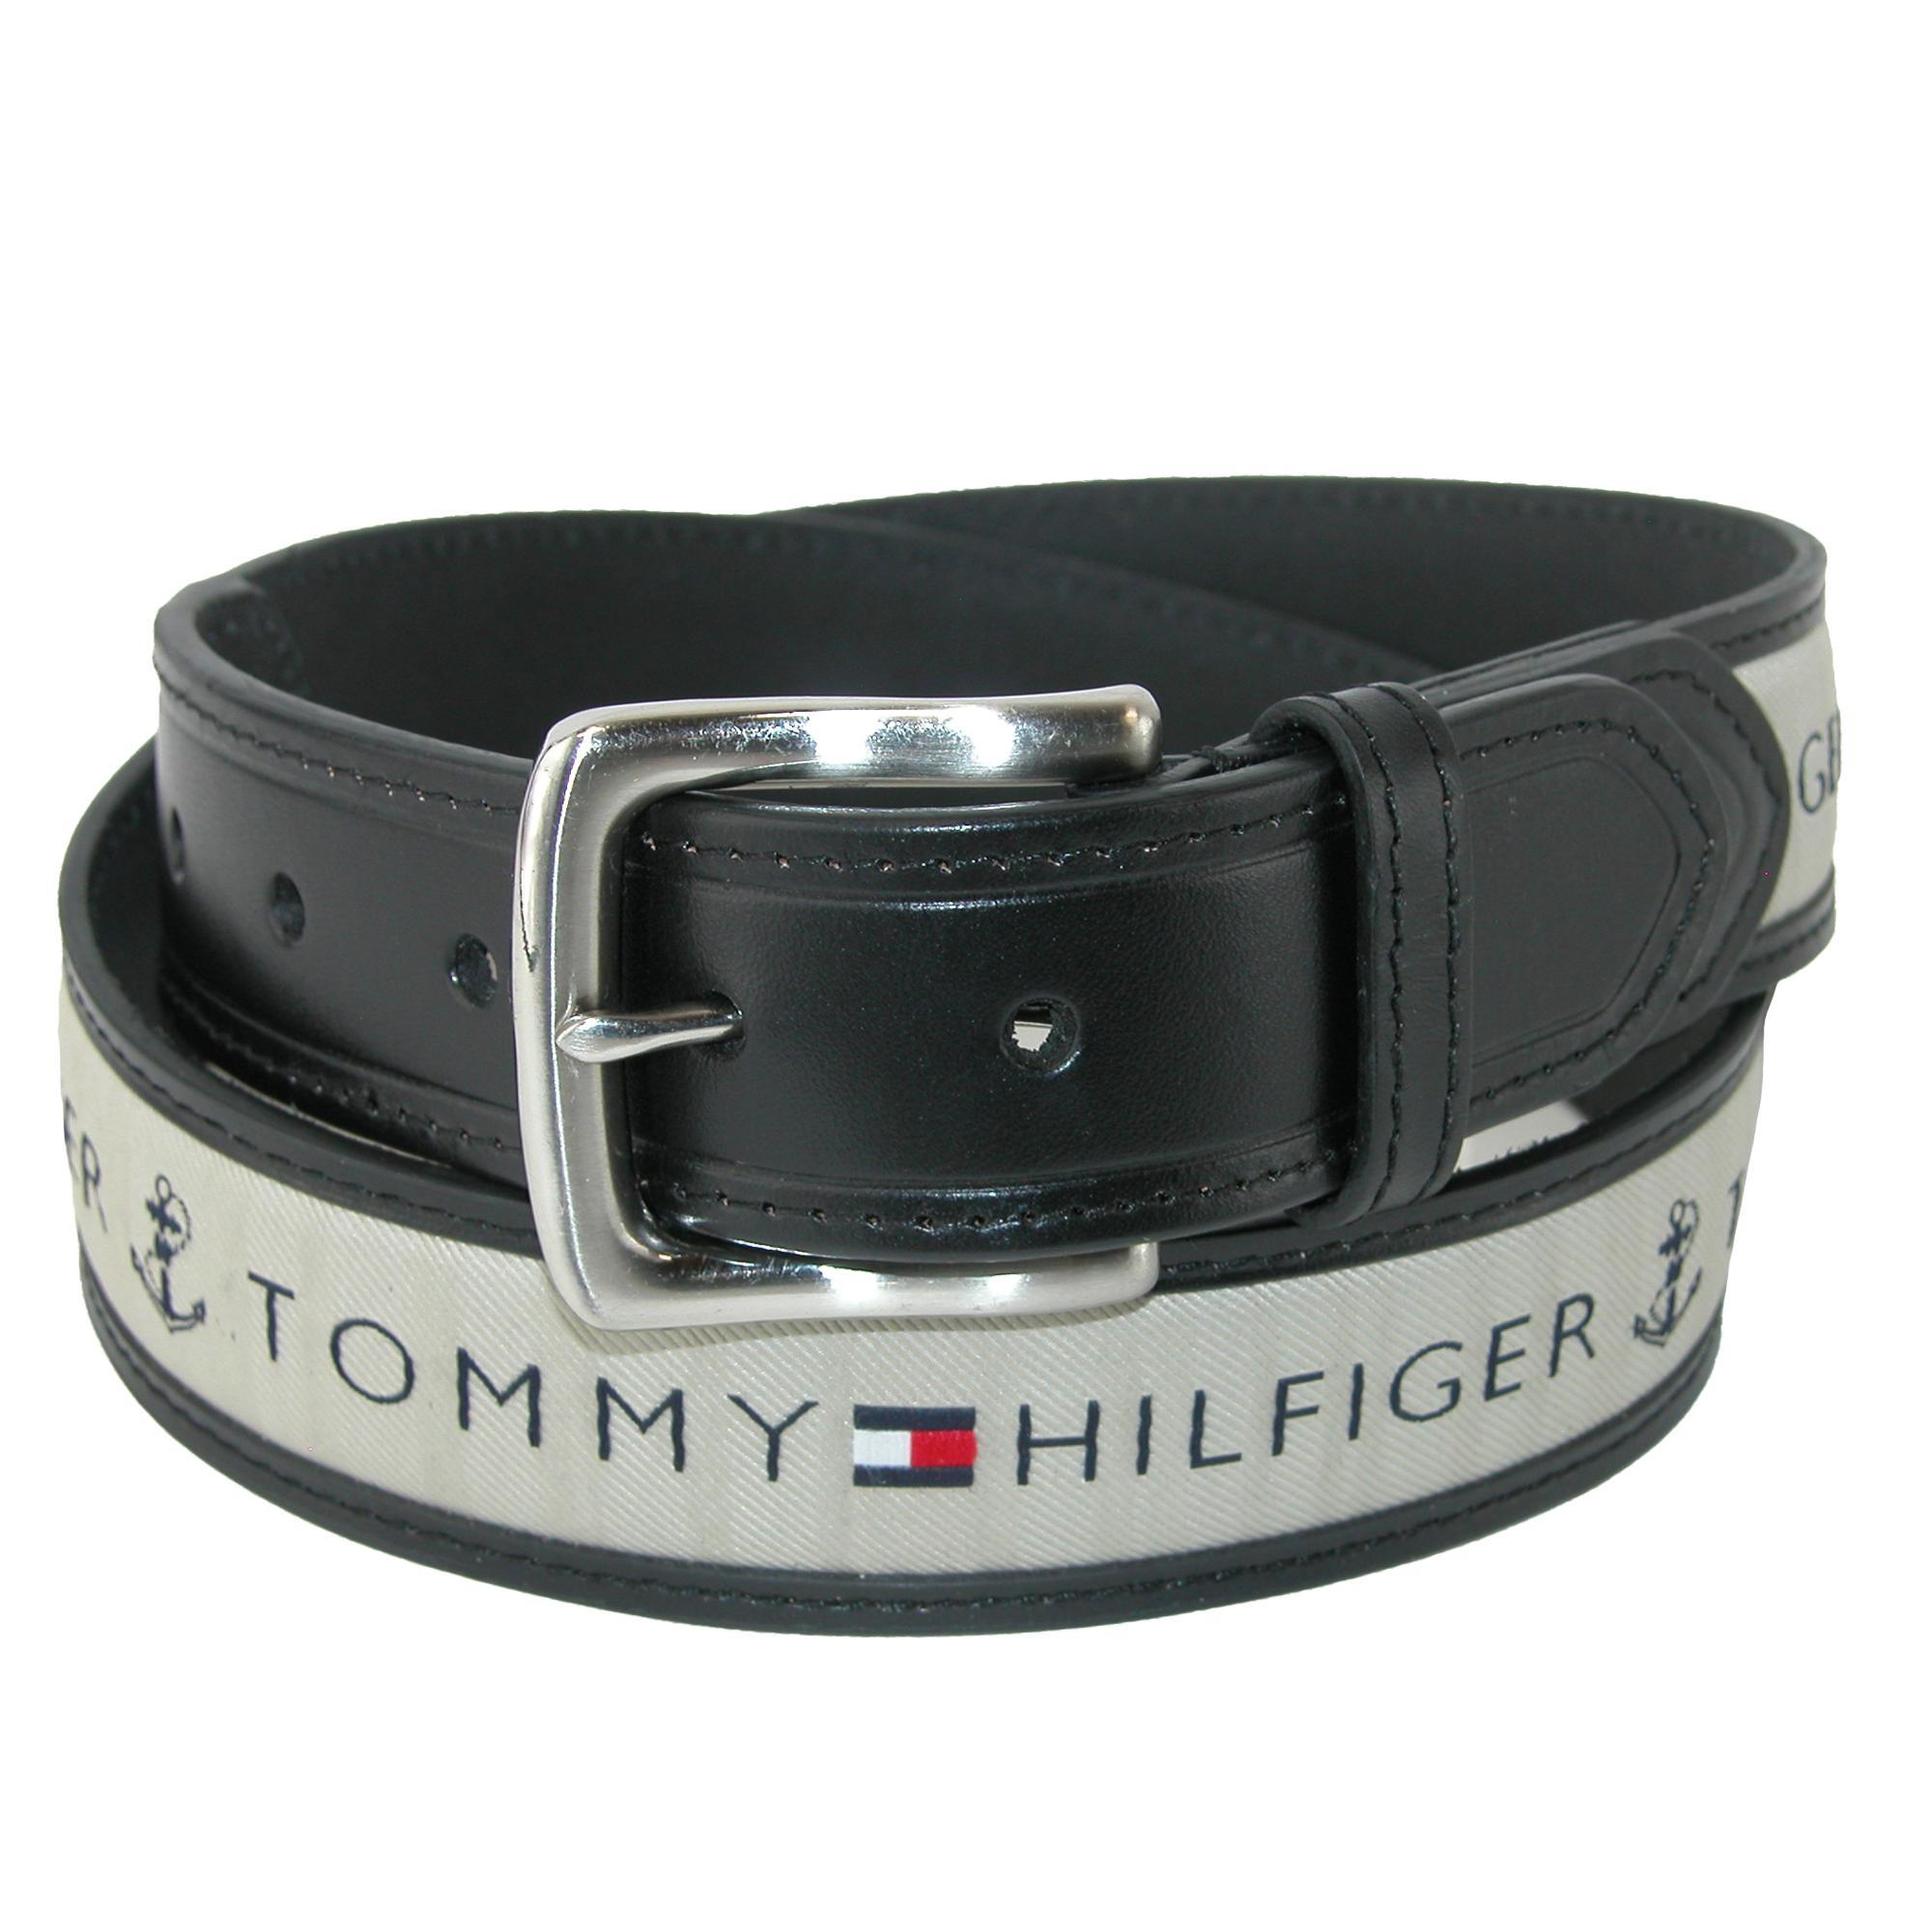 Tommy Hilfiger Mens Leather Casual Belt With Fabric Inlay